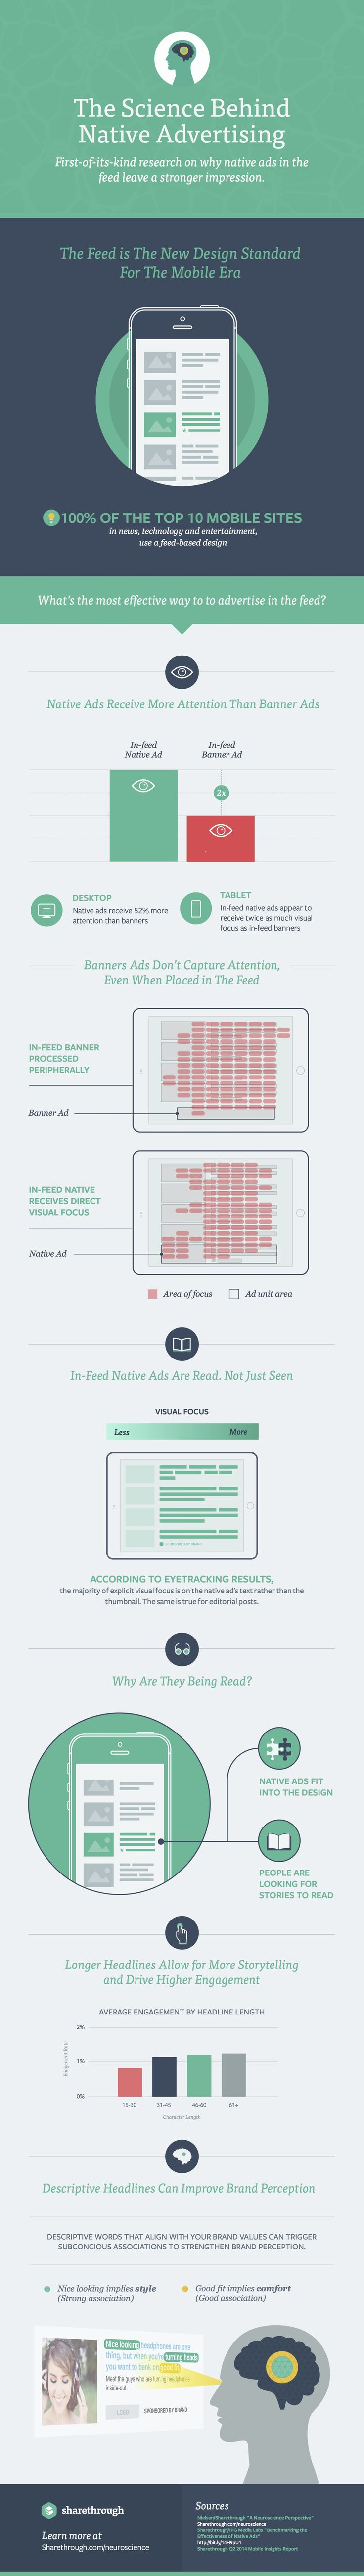 Science Behind Native Advertising - Infographic - Sharethrough - Neuroscience